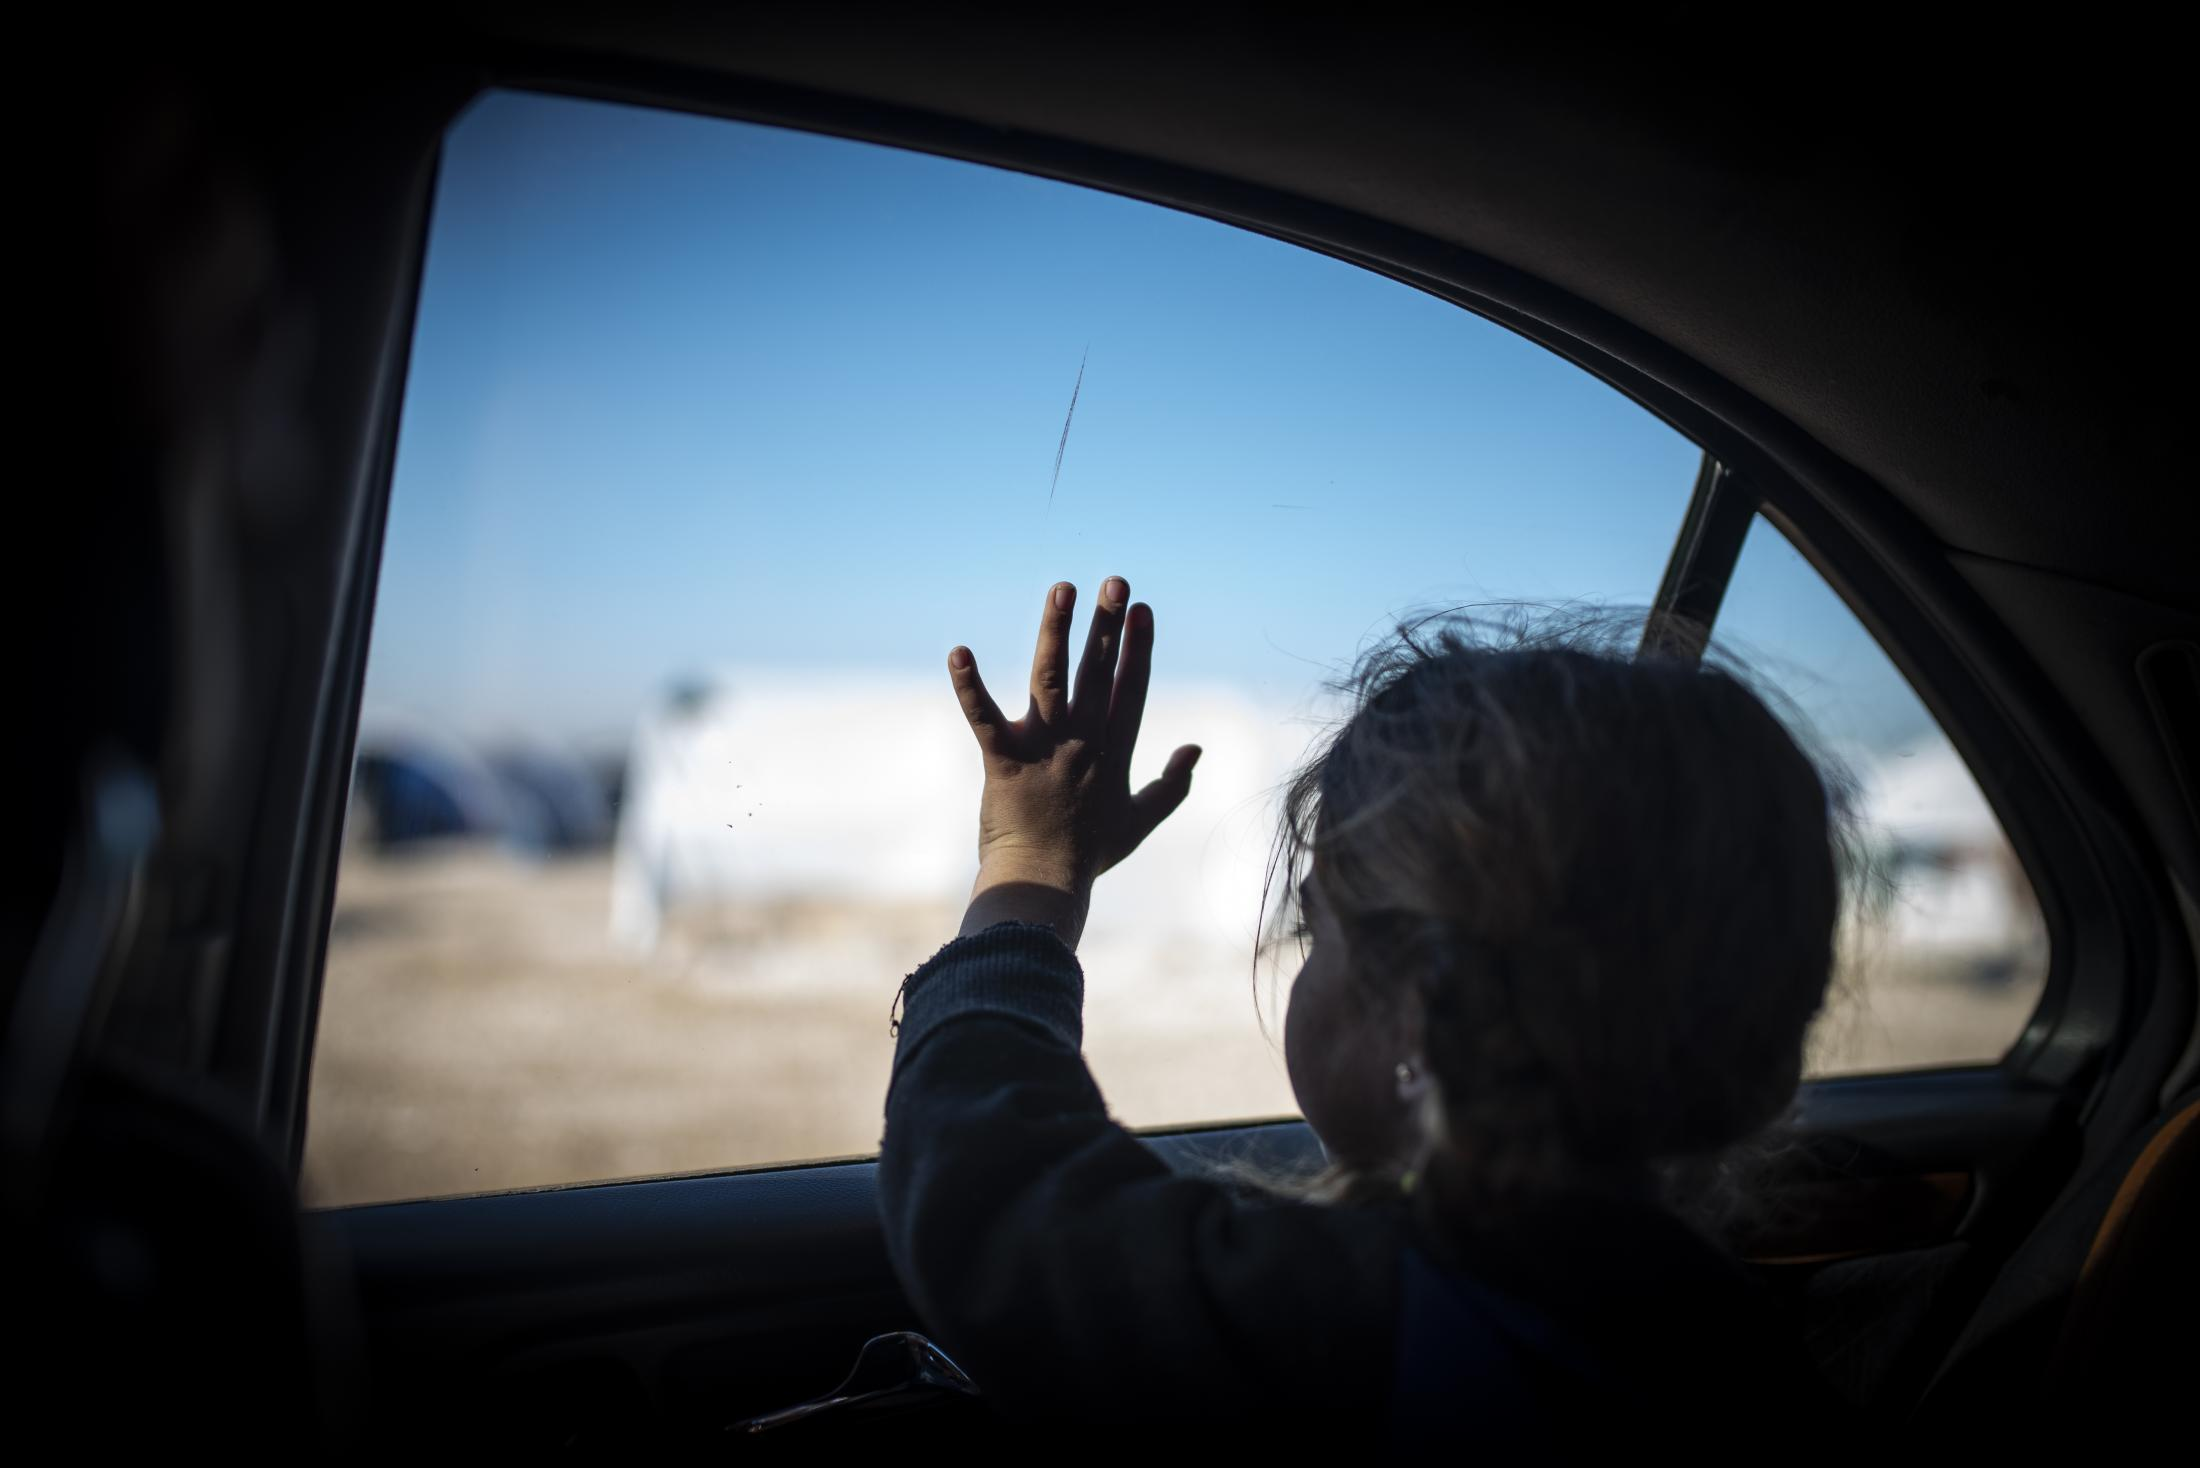 A girl looking from a car window the refugee camp of Washokani, near Hassaka where thousands of people are living after they fleed the Serekaniye province when the yihadists enter the zone and start comitting murders. After the withdrawal of US troops from northern Syria in October 2019, Turkey launched an offensive against the predominantly Kurdish areas in the northeast of the country along Islamist forces. Calls for war crimes investigations into the conduct of Ankara-backed militias are mounting ever since. (Andoni Lubaki / Euskal Fondoa)